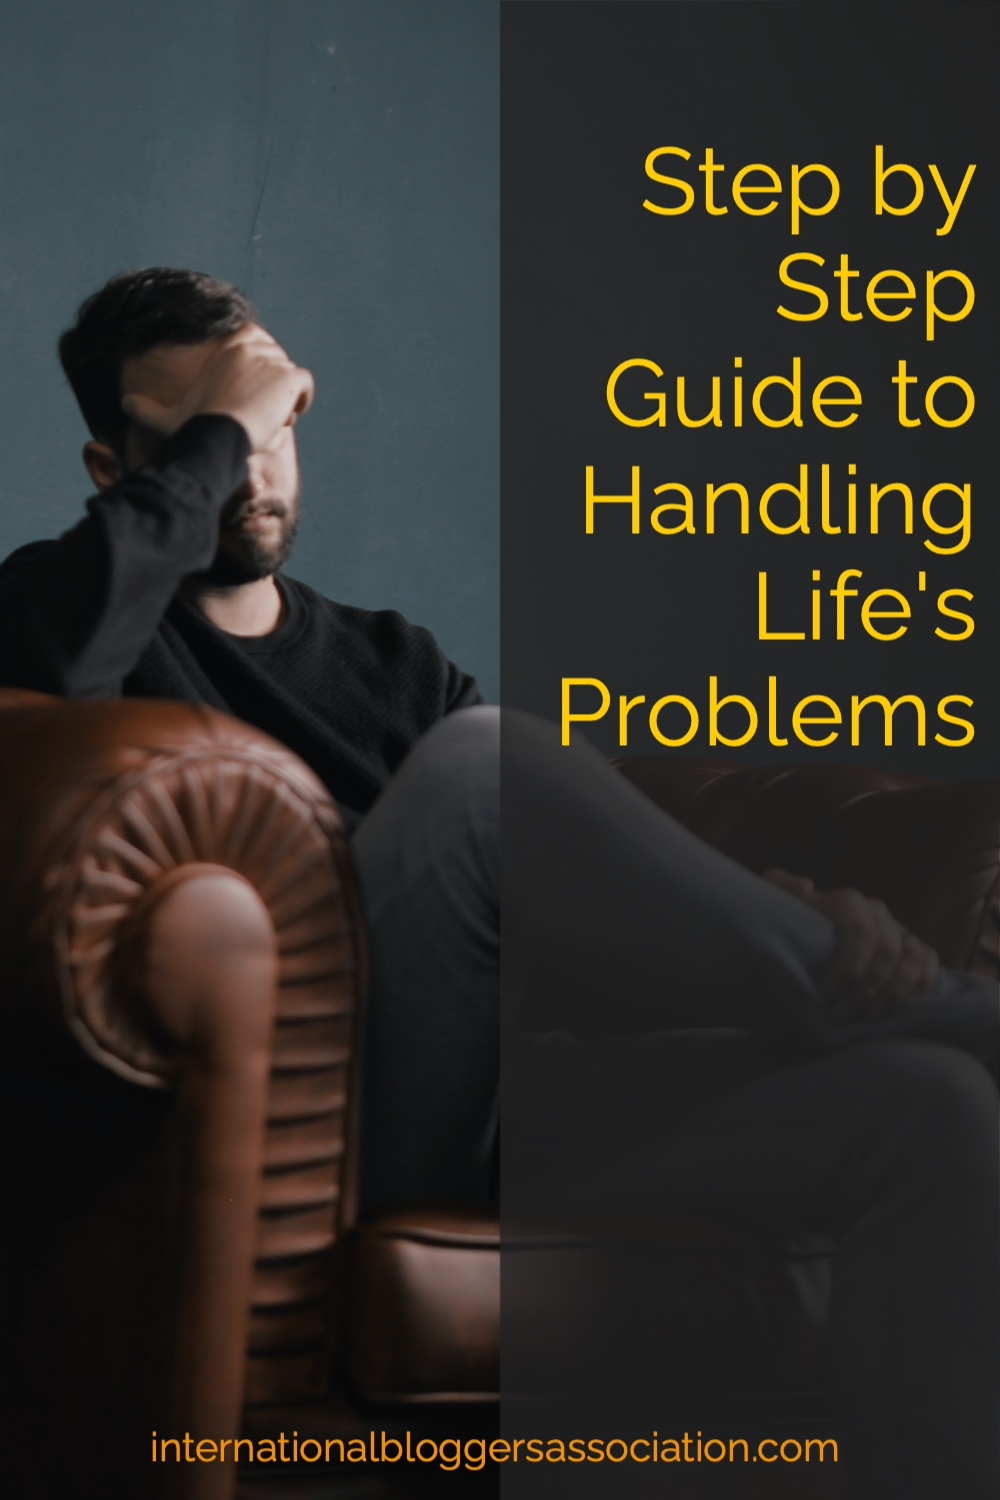 Step by step plan for dealing with life's problems, big and small, so they do not overwhelm you and take over your life.